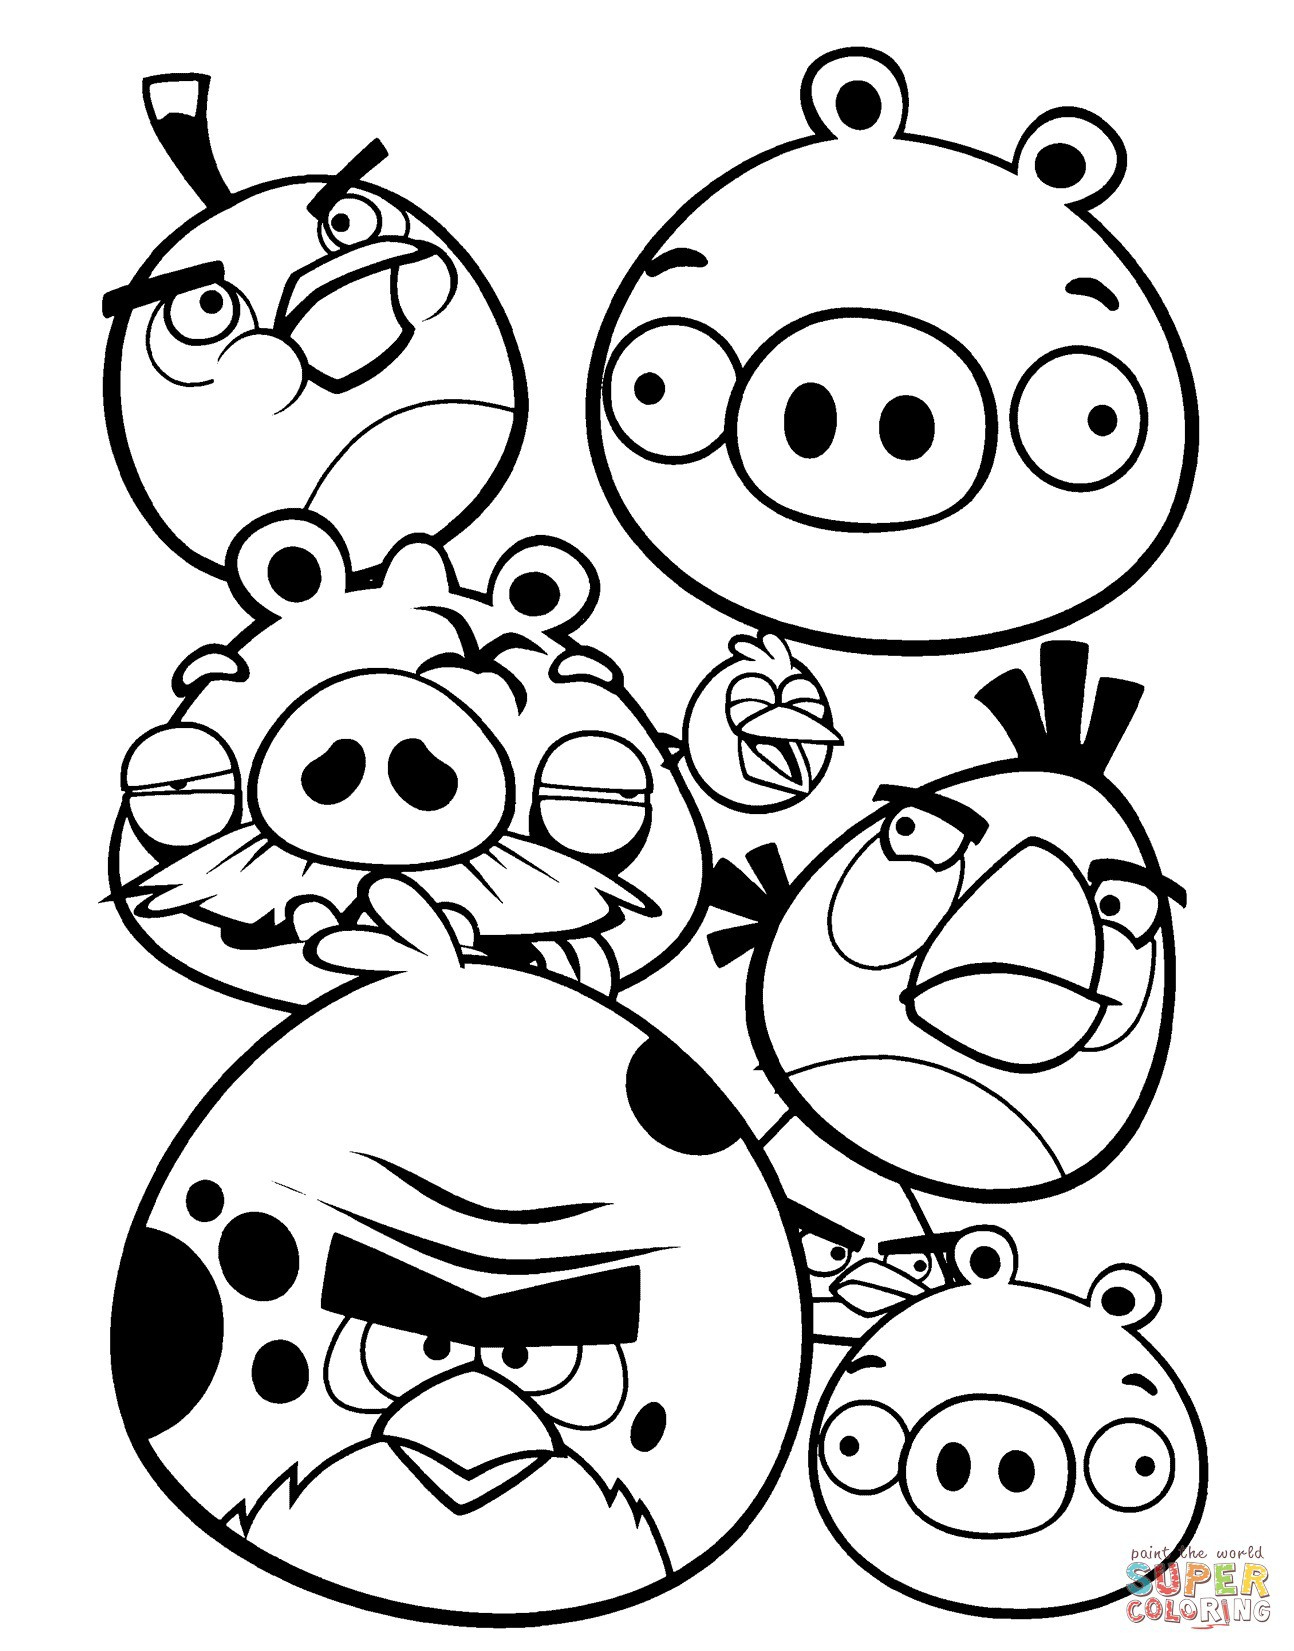 angry-bird-coloring-pages-of-angry-bird-coloring-pages Angry Bird Coloring Pages Animal